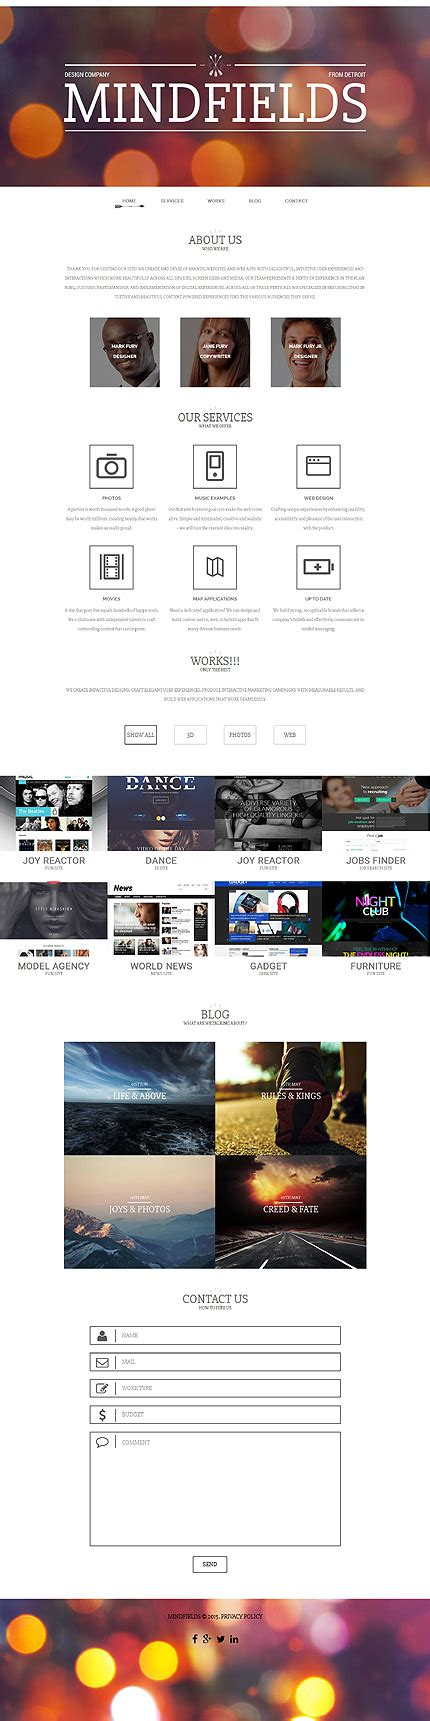 yii2 layout main php template 55973